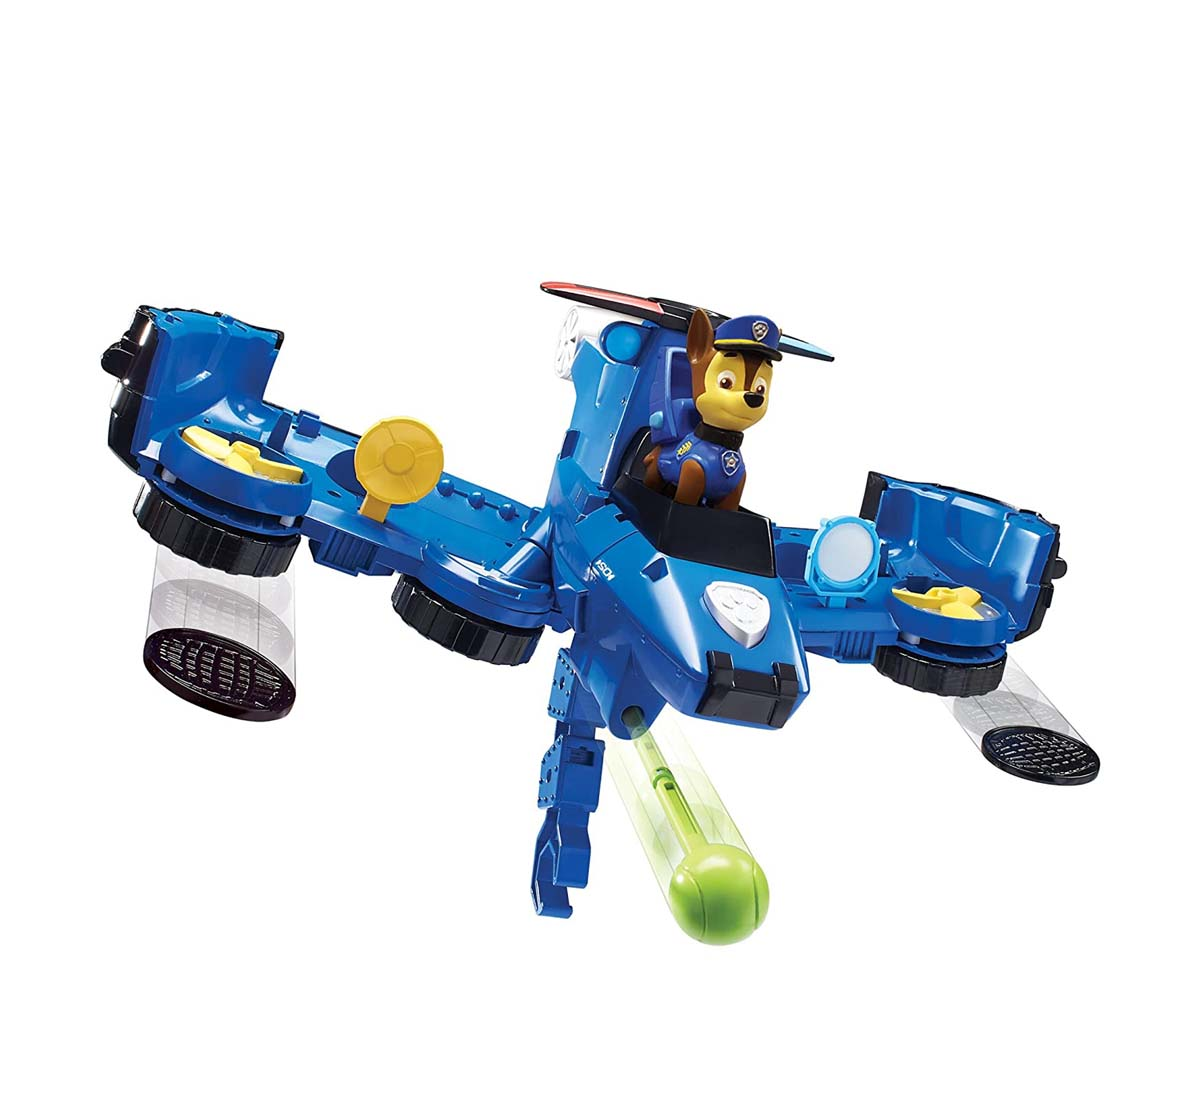 Paw Patrol   Paw Patrol Flip & Fly Vehicle Activity Toys for Kids age 3Y+